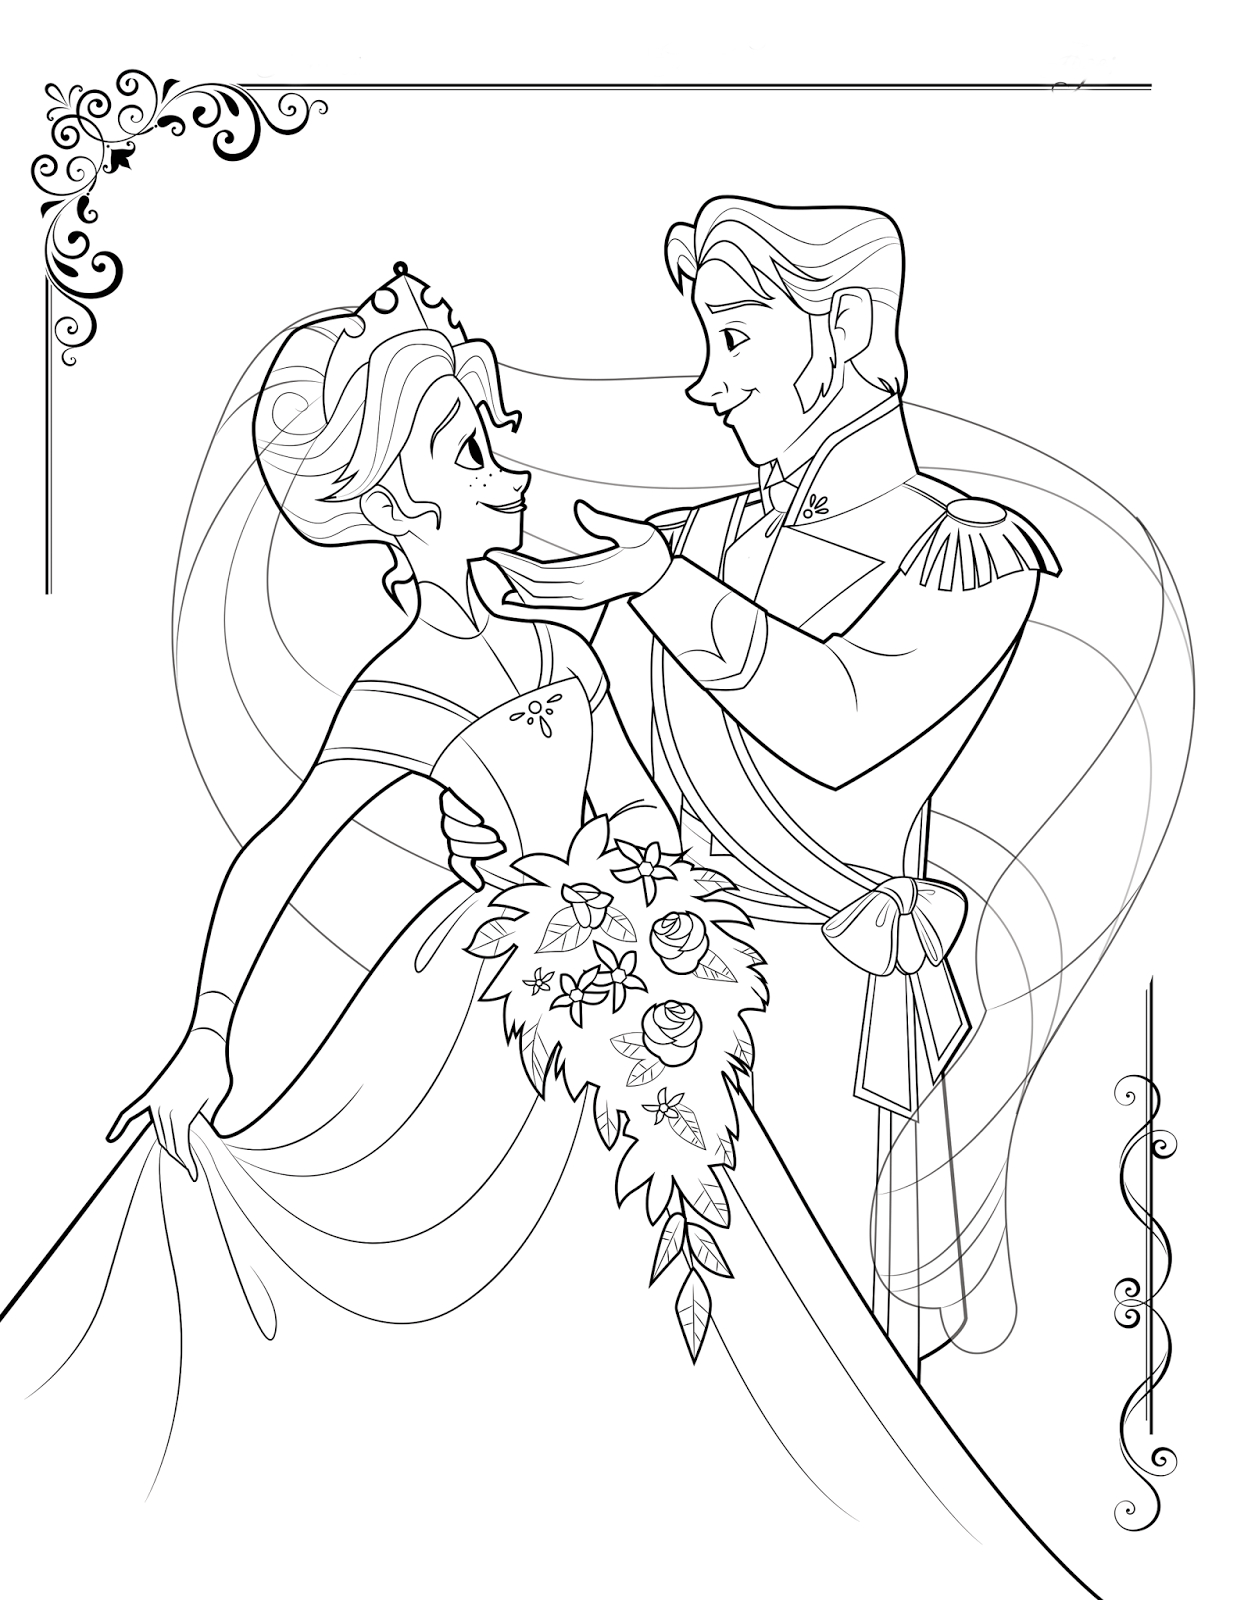 Frozen Coloring Pages Gallery | Free Coloring Sheets